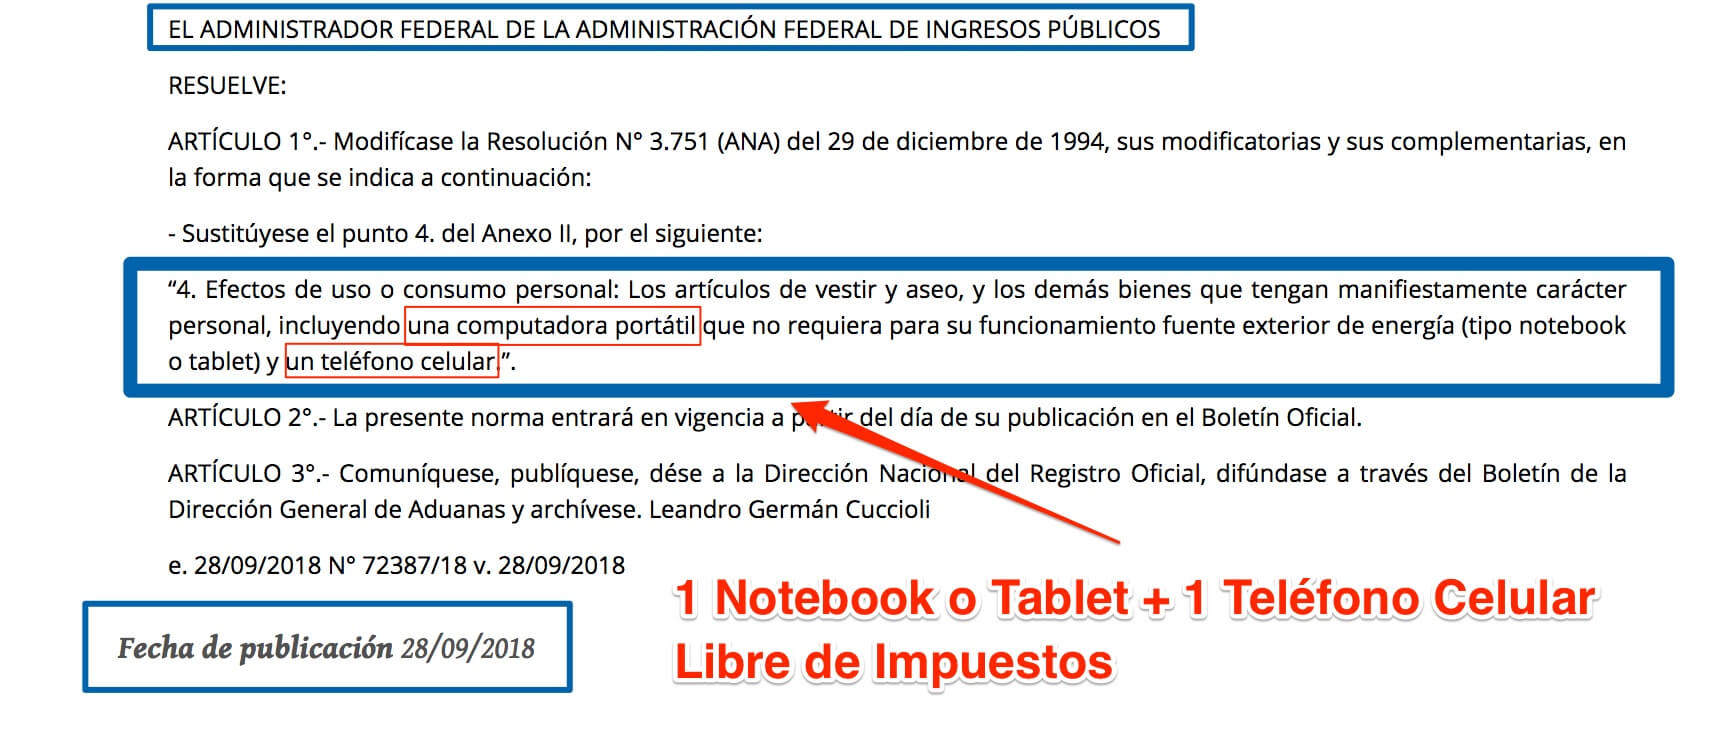 Resolución de AFIP sobre Notebooks y Celulares